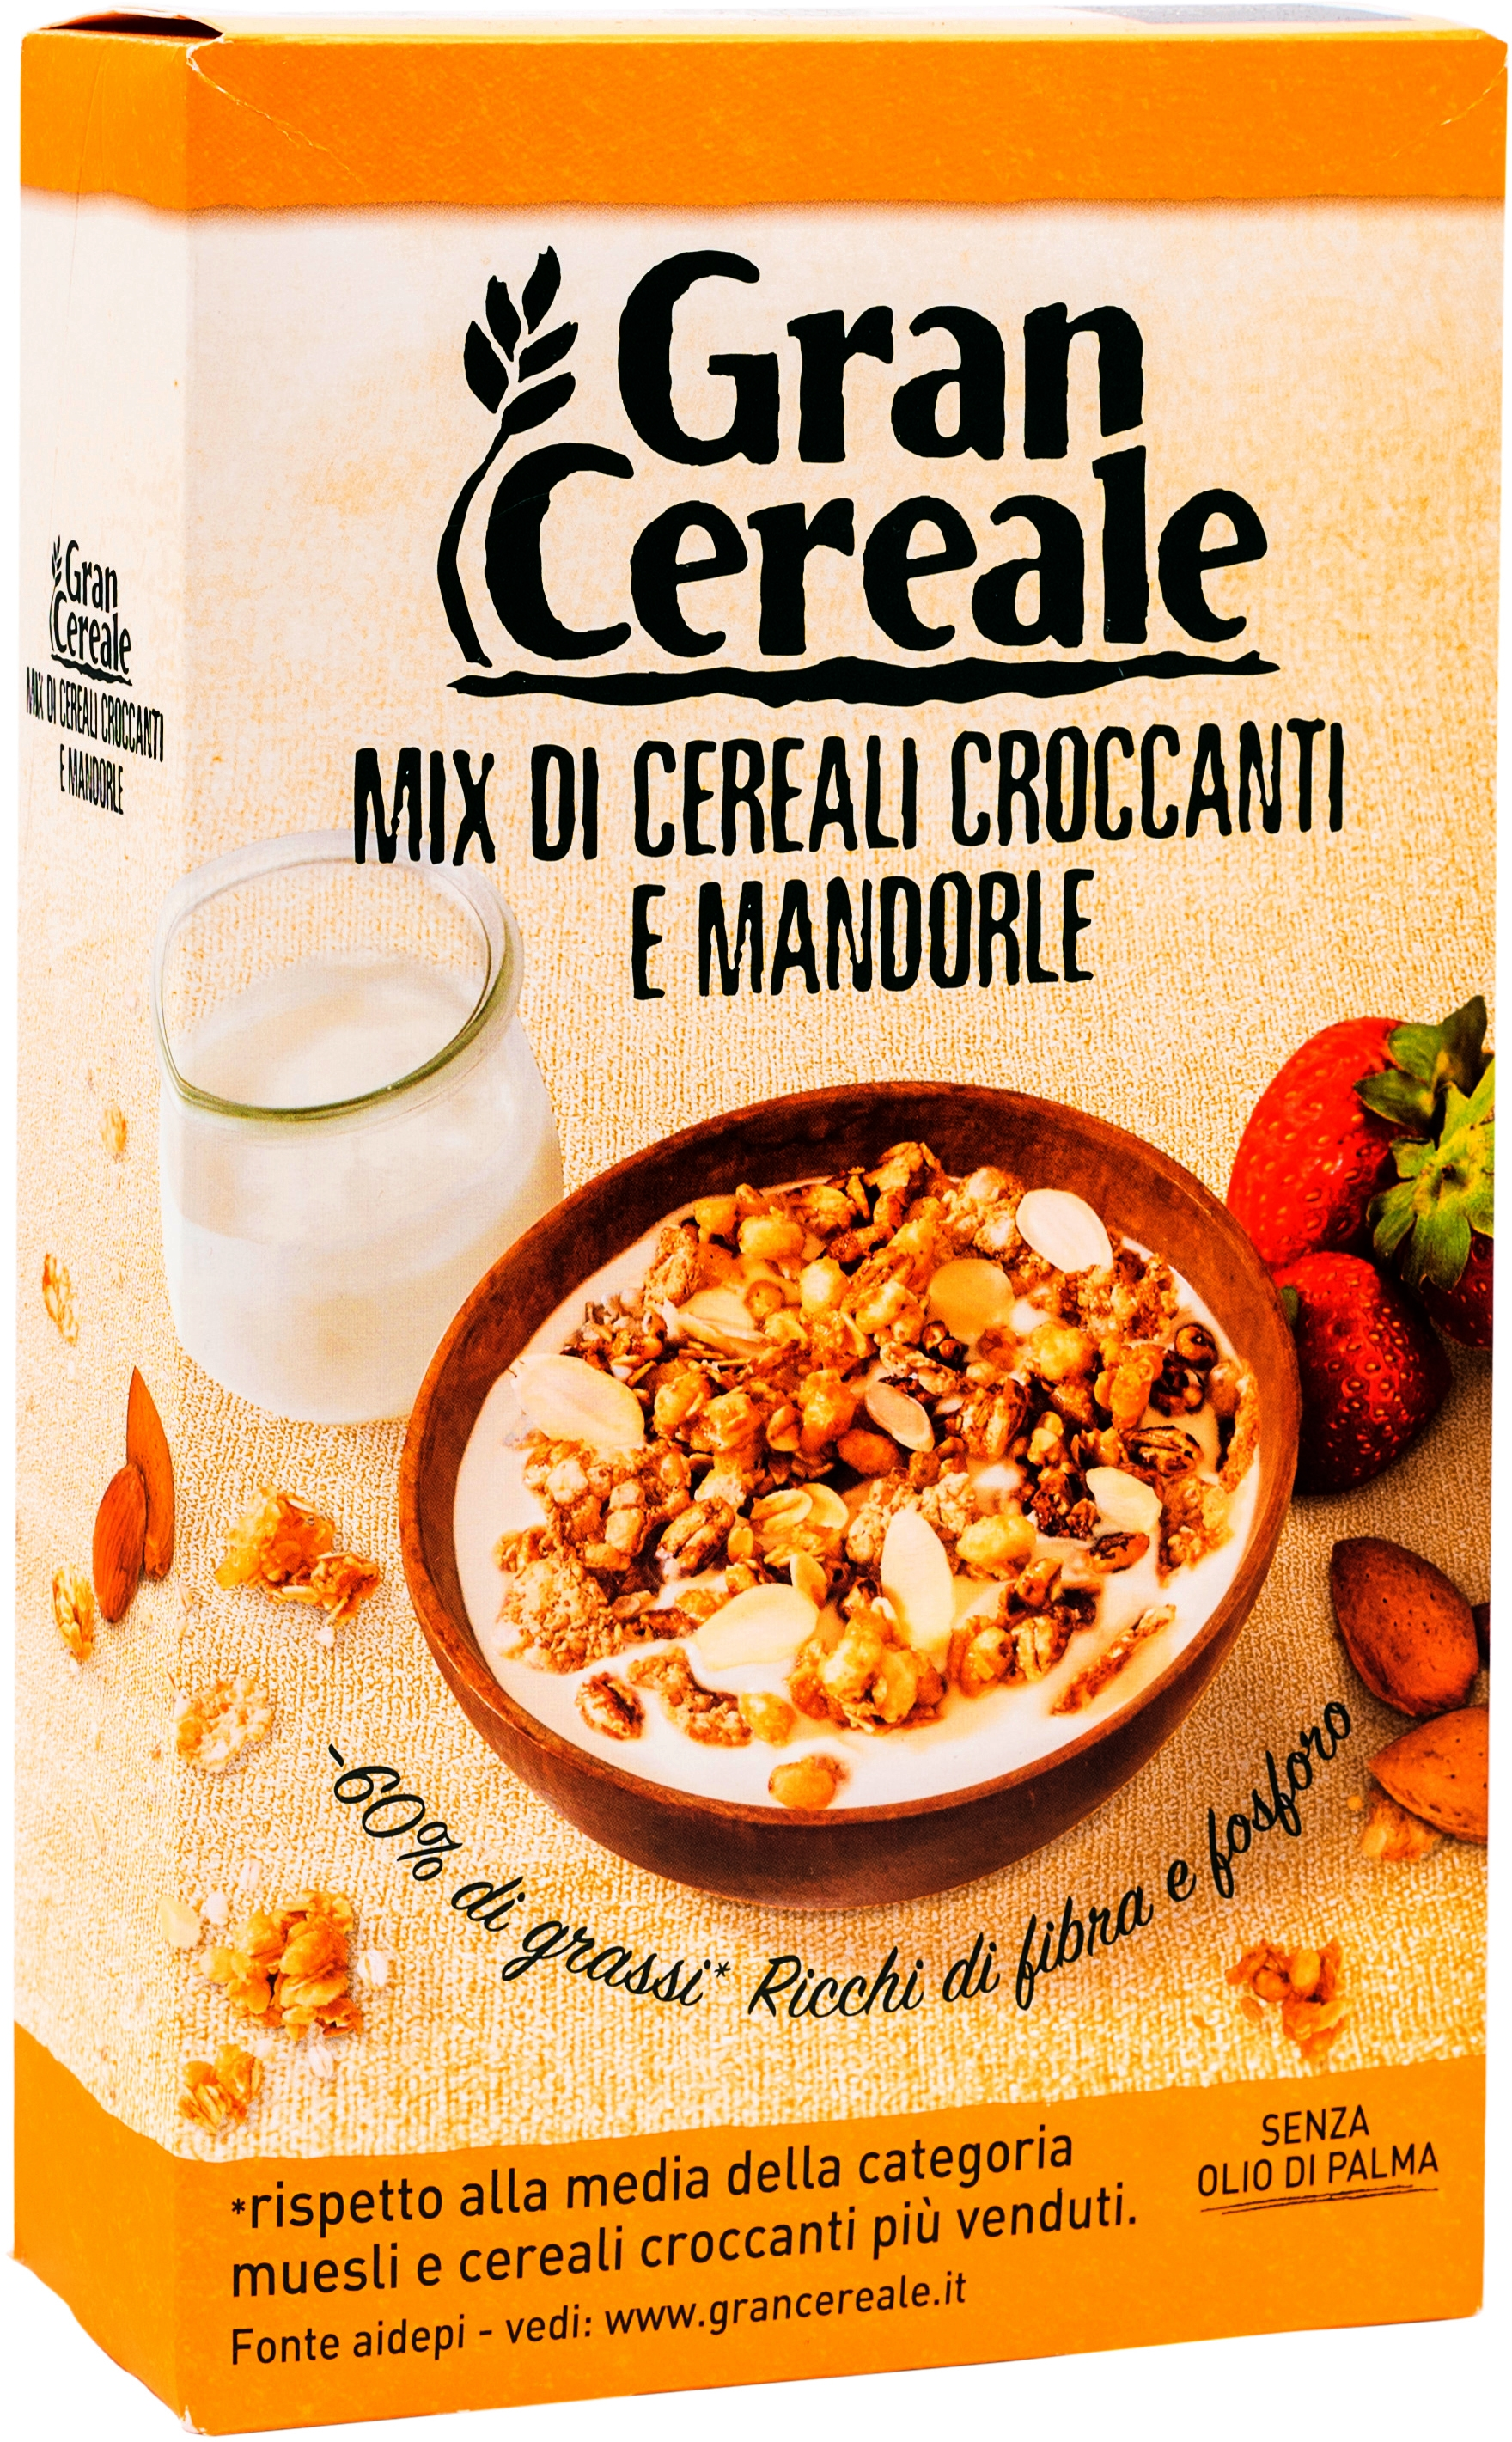 MIX DI CEREALI CROCCANTI E MANDORLE